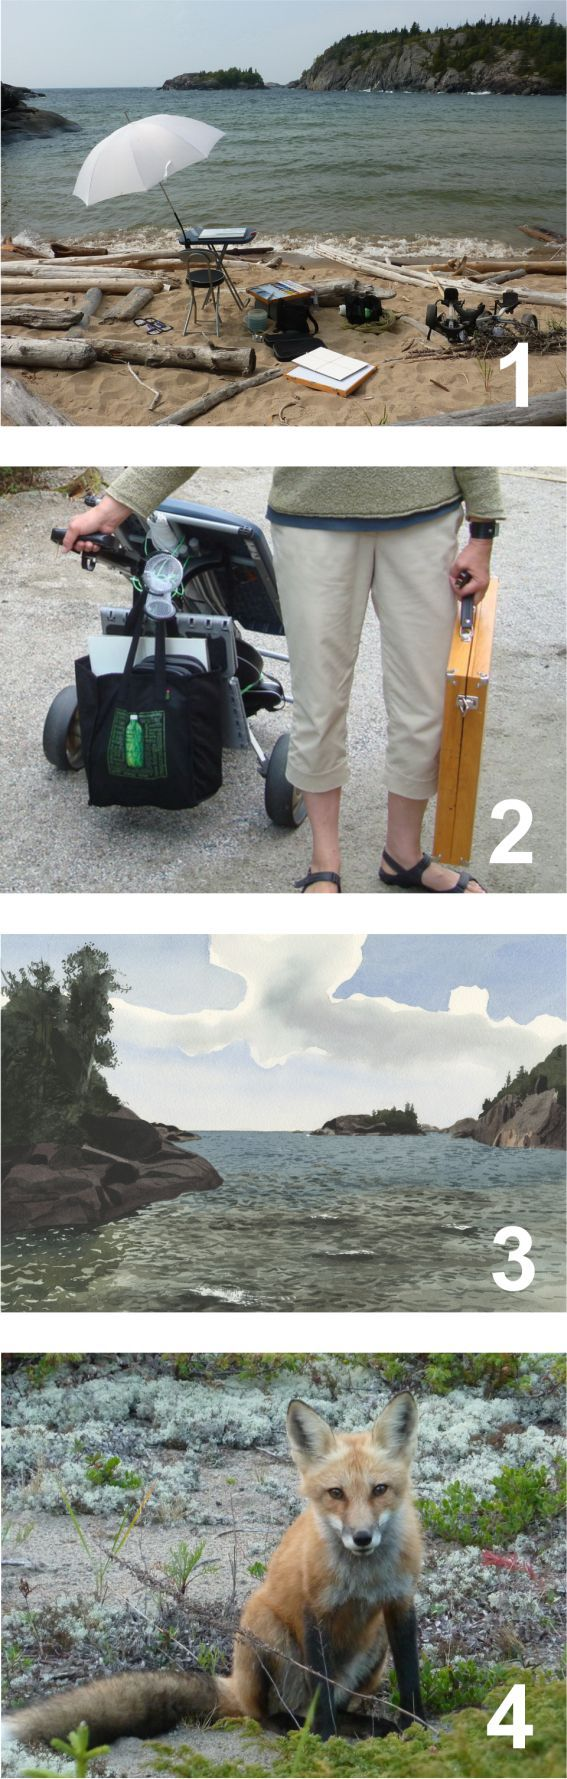 Plein Air Painting with Eva Bartel. A very beautiful spot to paint; Pukaskwa National Park, Ontario, Canada  1. the setup 2.transporting supplies on a golf cart 3.the watercolor 4.We spot a fox on the way back to the vehicle, plus fresh signs of a bear (yikes!)